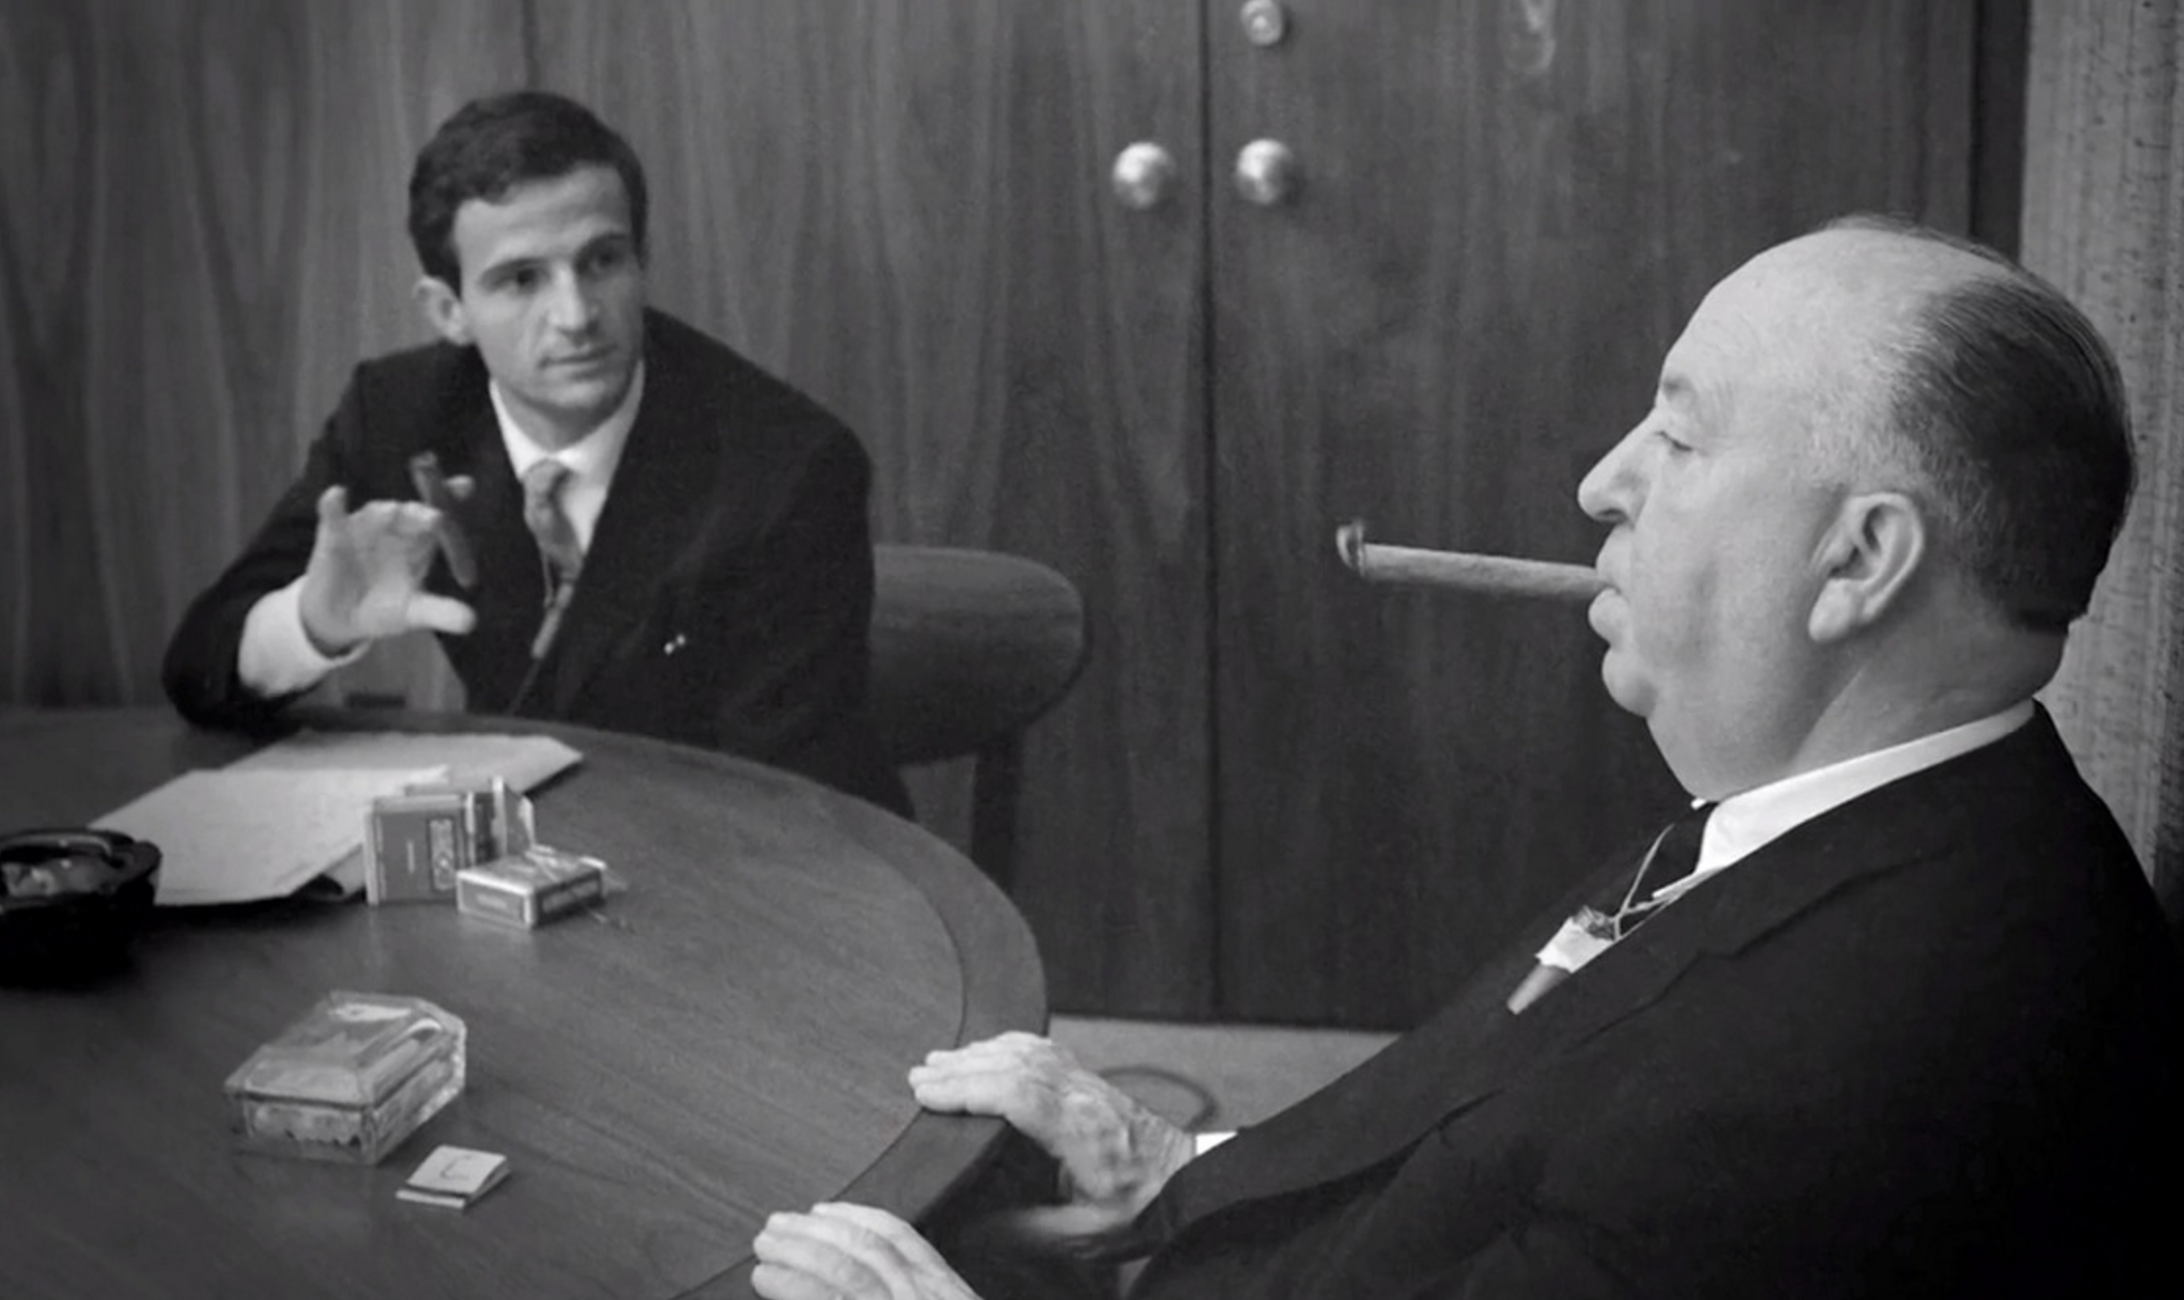 François Truffaut interviewing Alfred Hitchcock, 1962